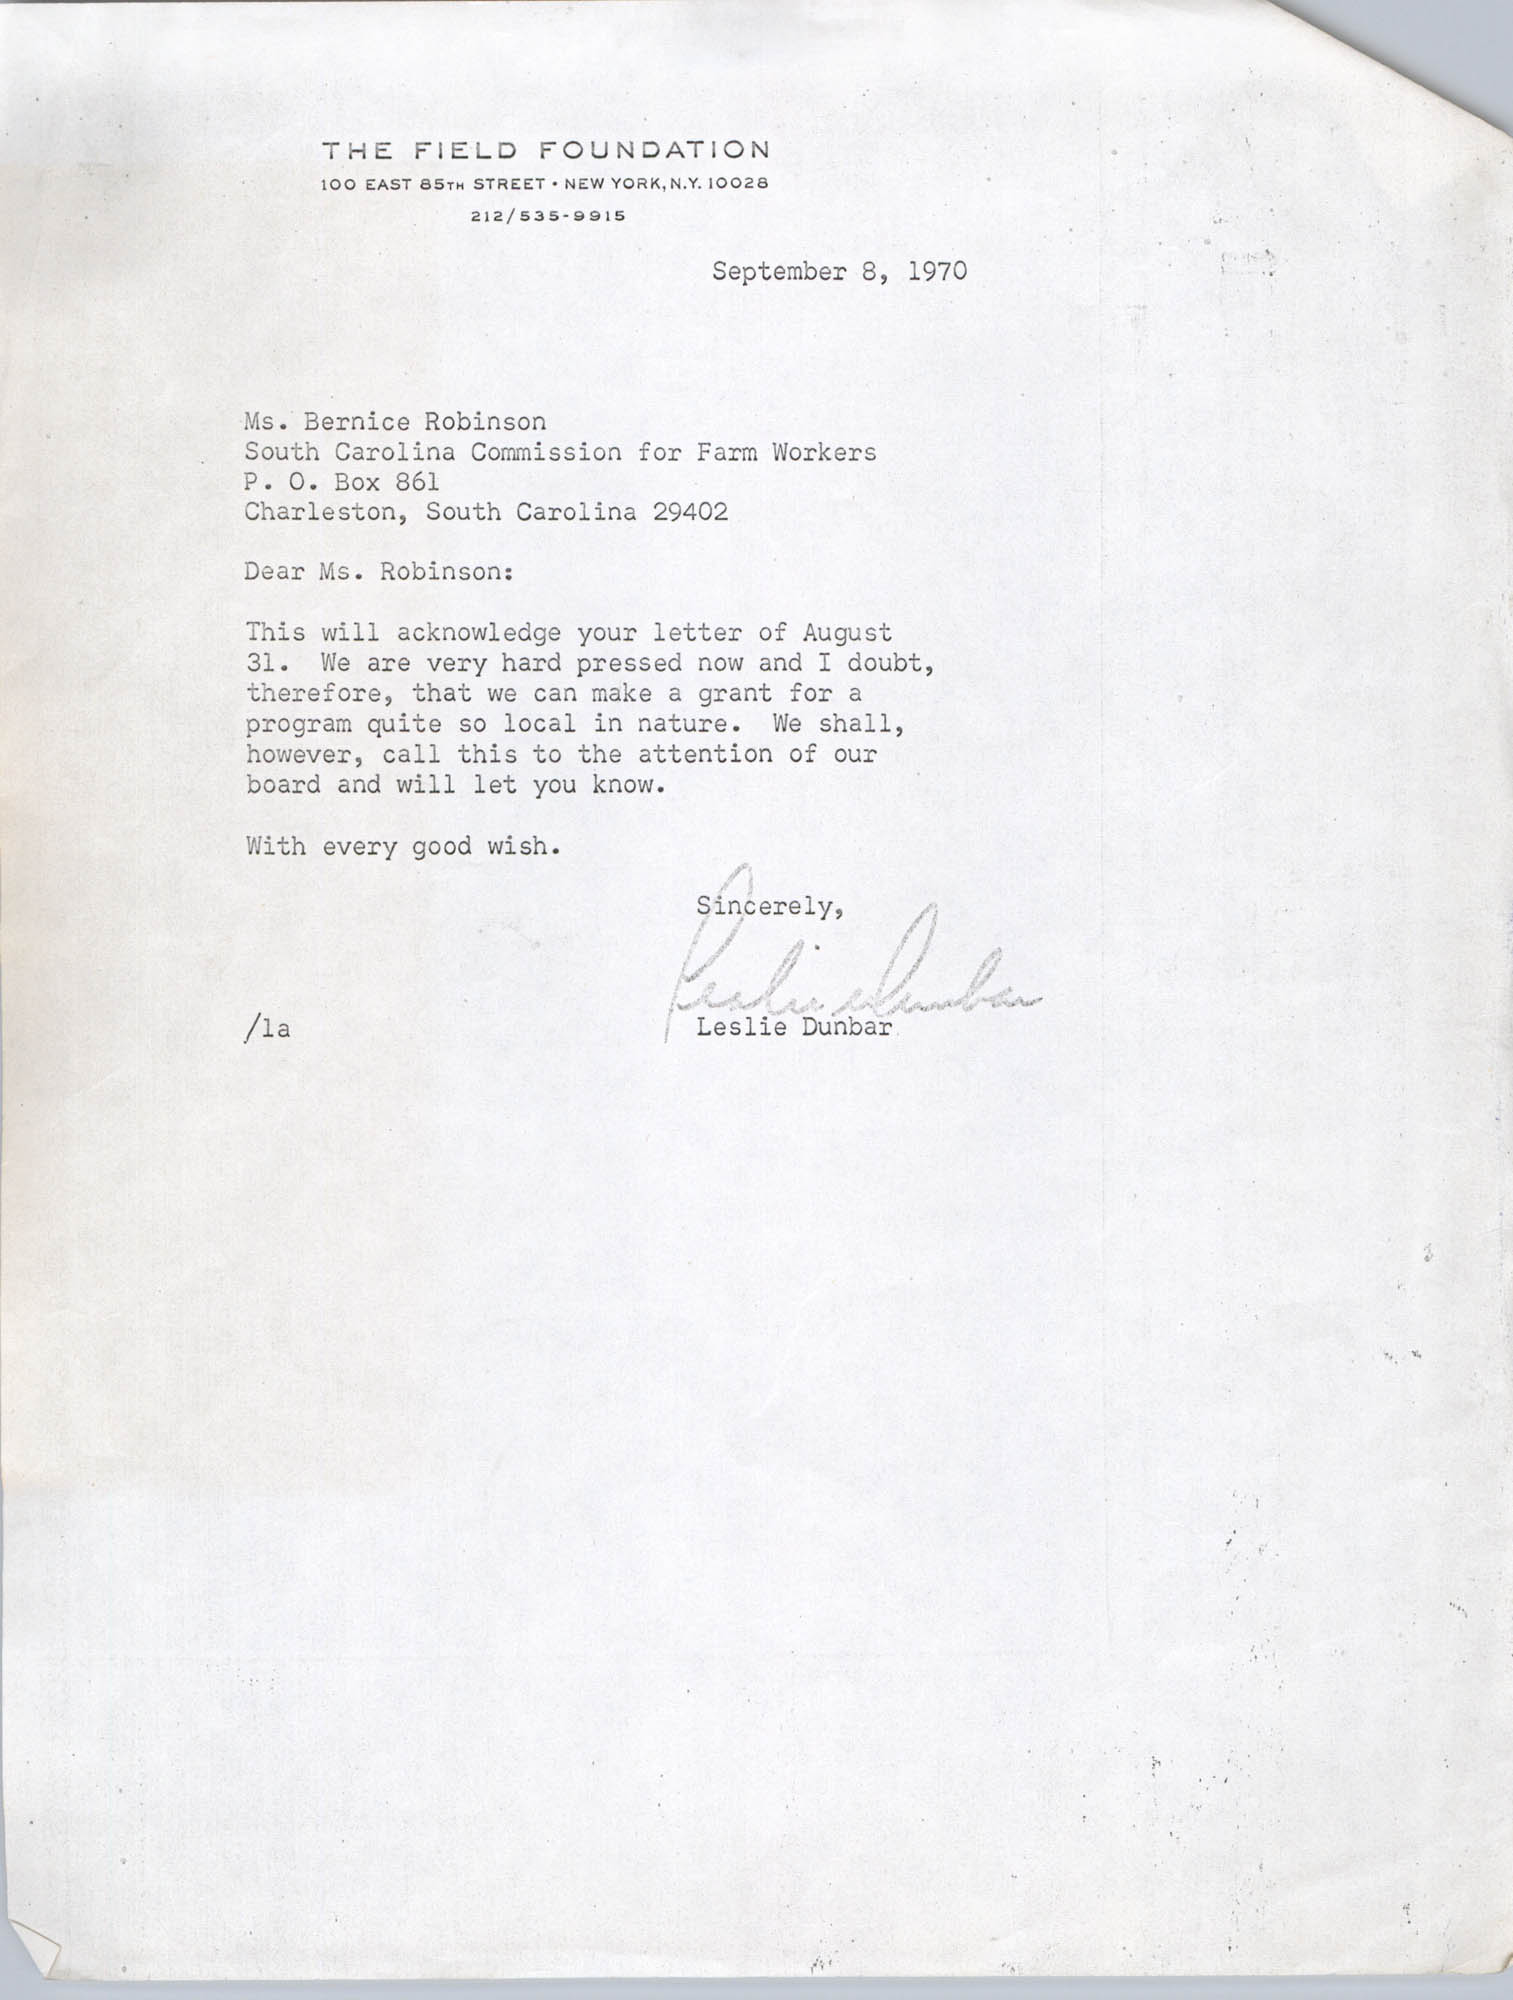 Letter from Leslie Dunbar to Bernice Robinson, September 8, 1970